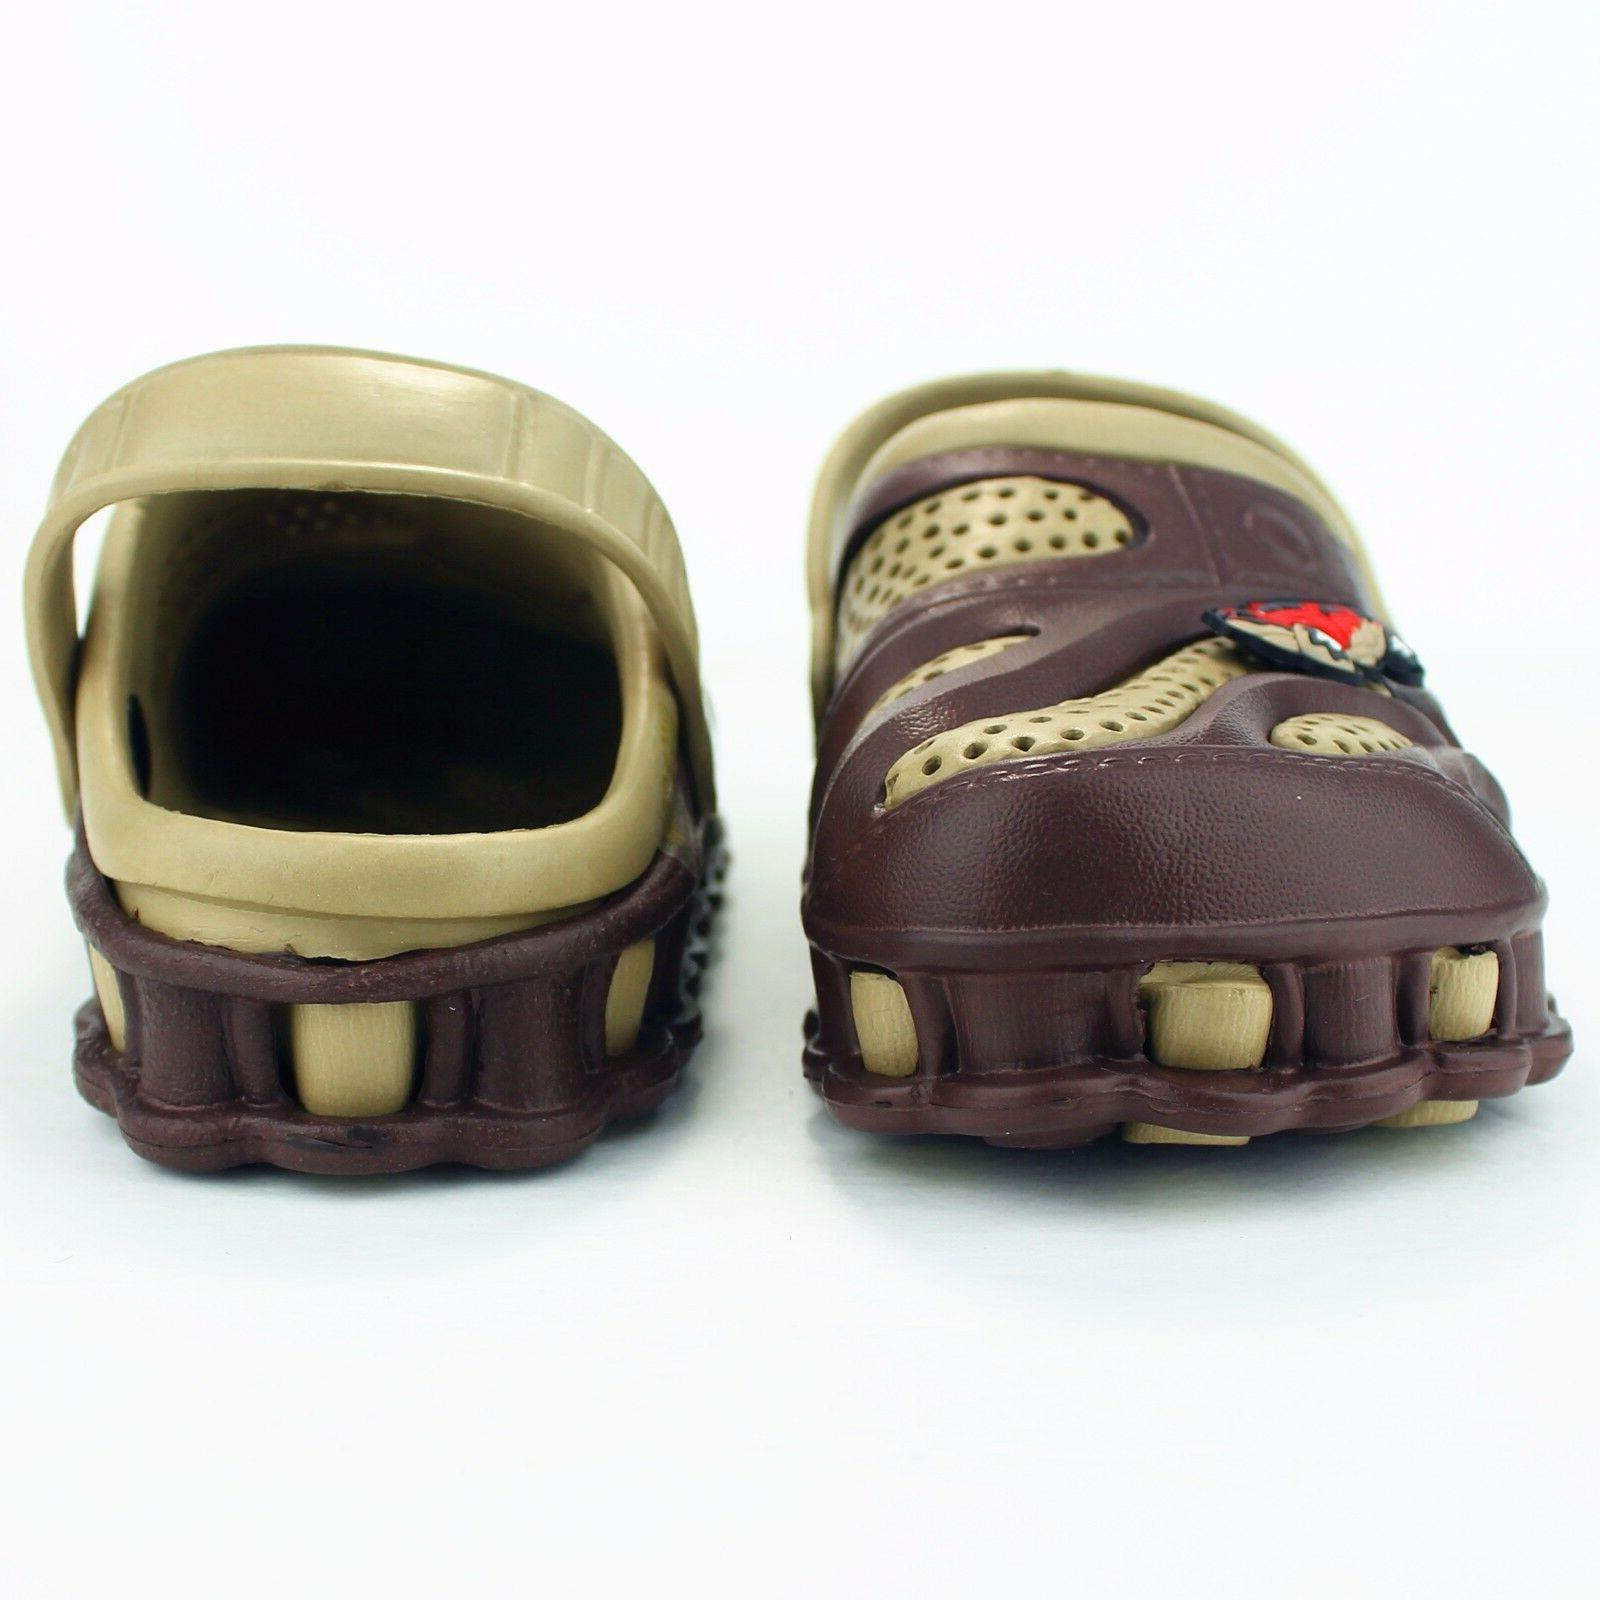 Garden Clogs Shoes Boys Kids Casual Slipper Sandals